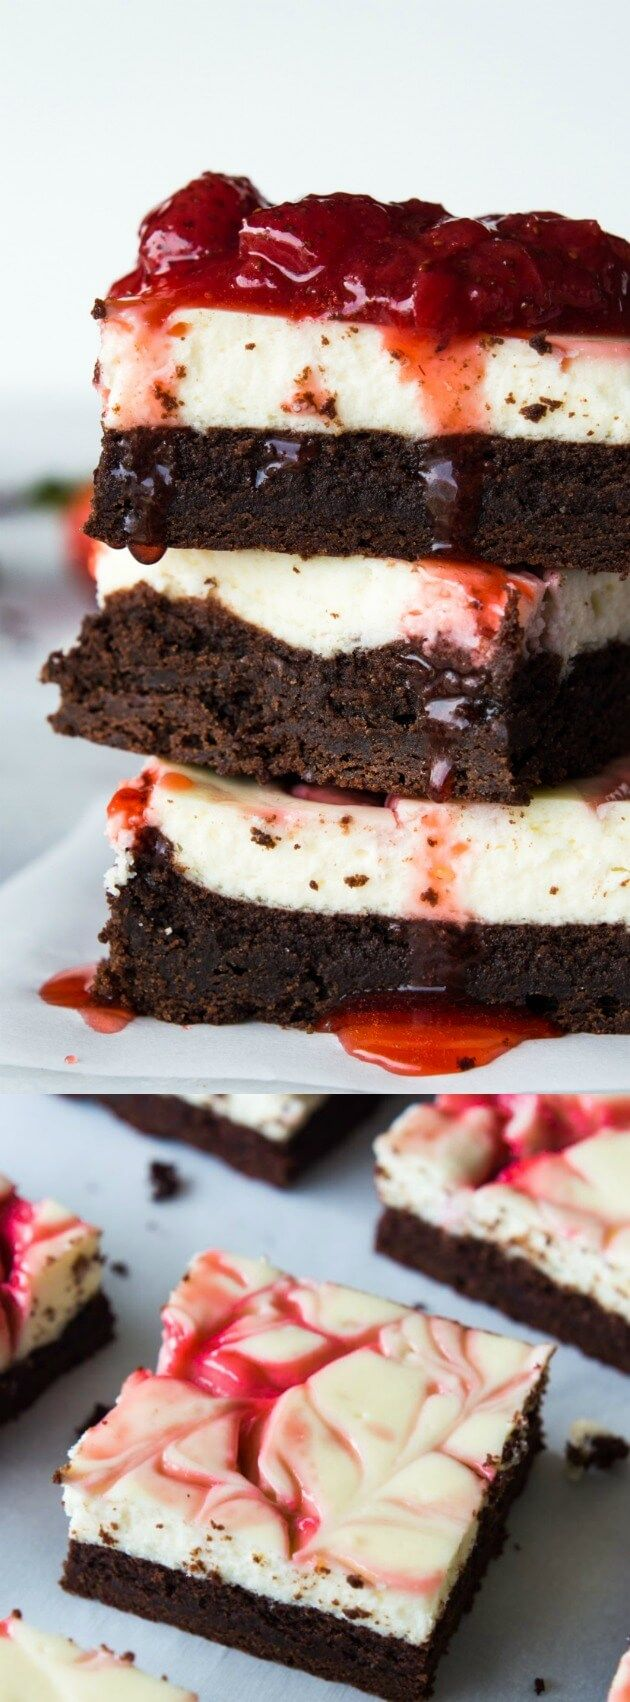 These Strawberry Cheesecake Brownies from House of Yumm are what desserts are all about. Homemade brownies are loaded up with a layer of creamy cheesecake then swirled with a sweet strawberry sauce for a pop of flavor!